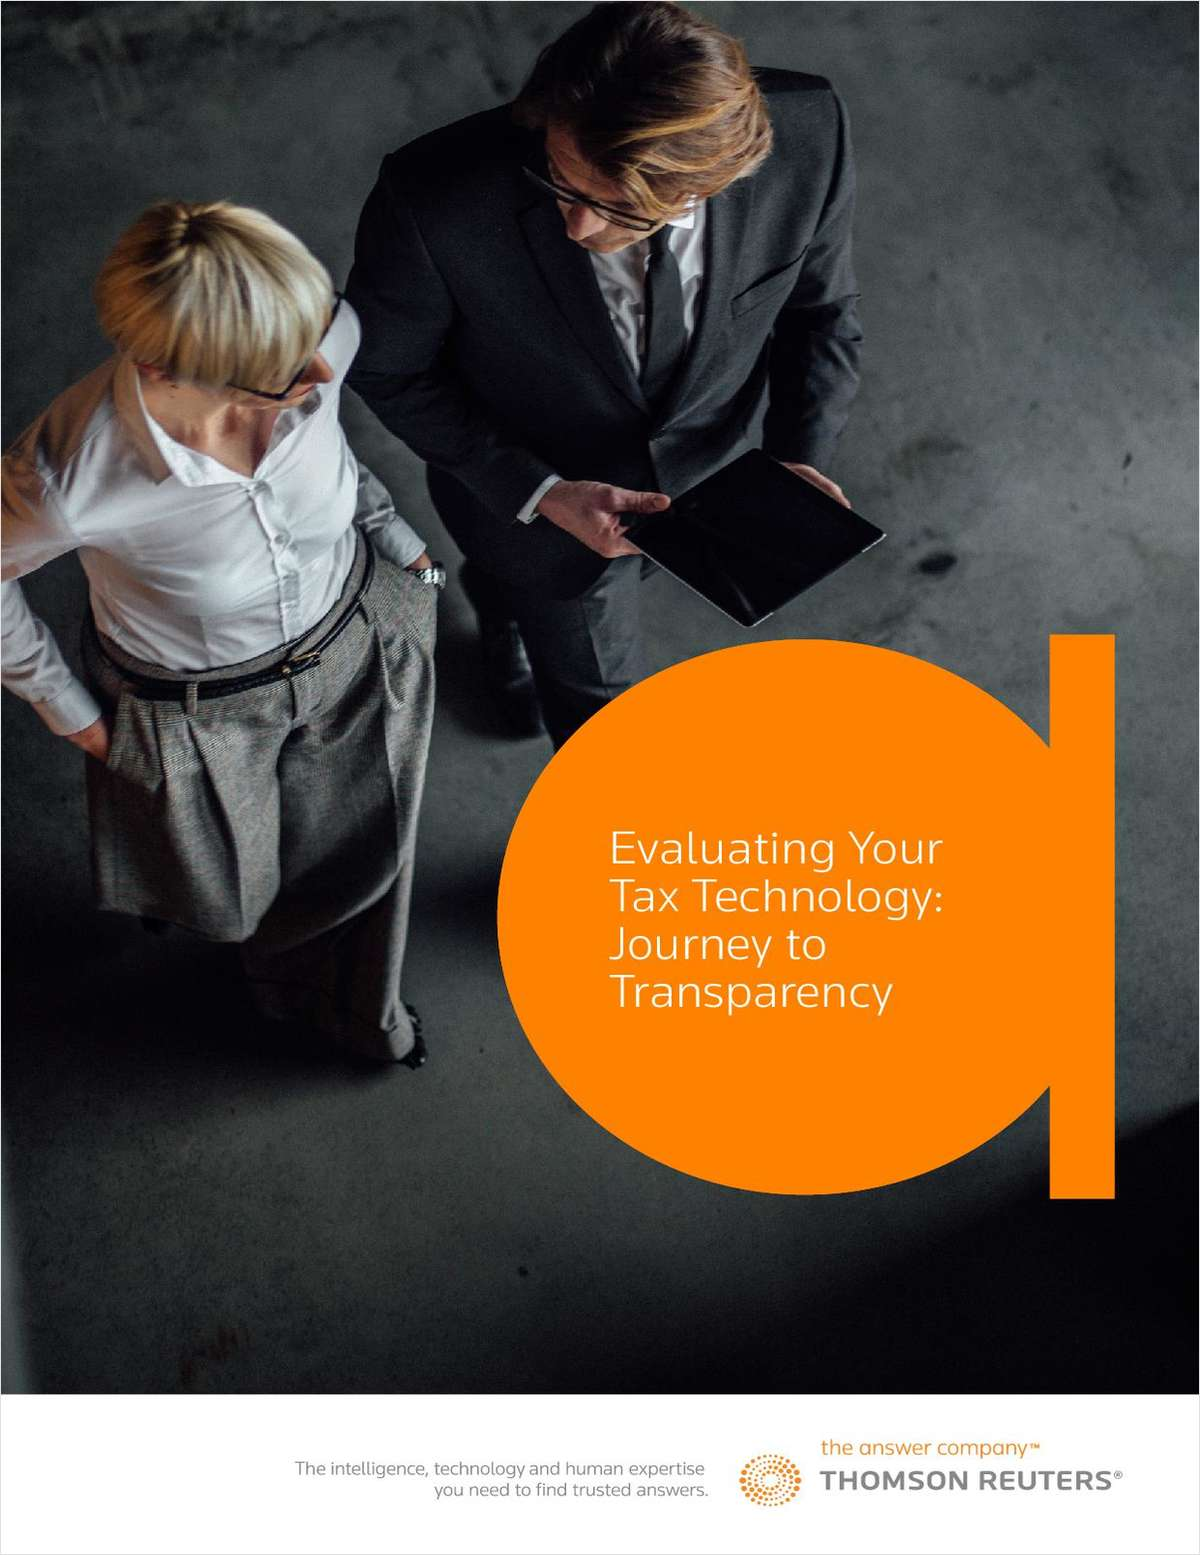 Evaluating Your Tax Technology: Journey to Transparency